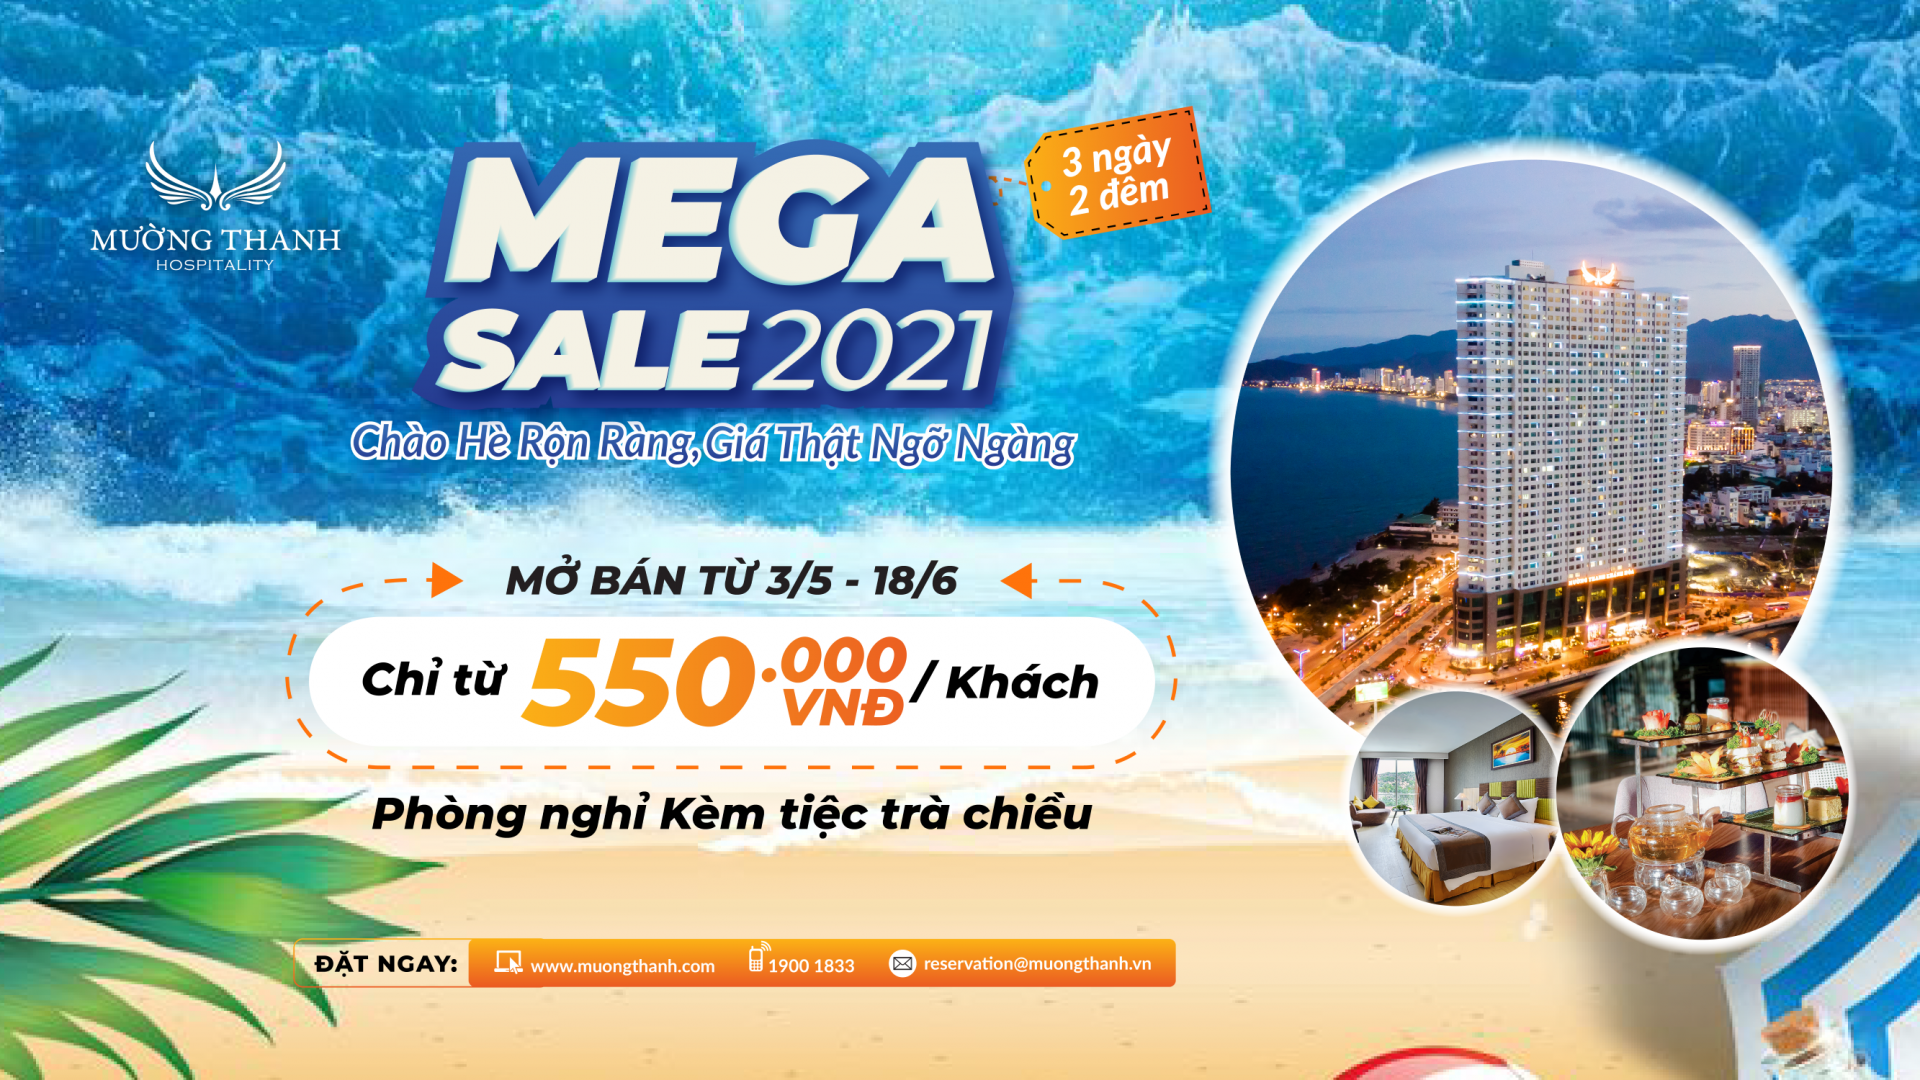 experience summer package mega sale 2021 at muong thanh